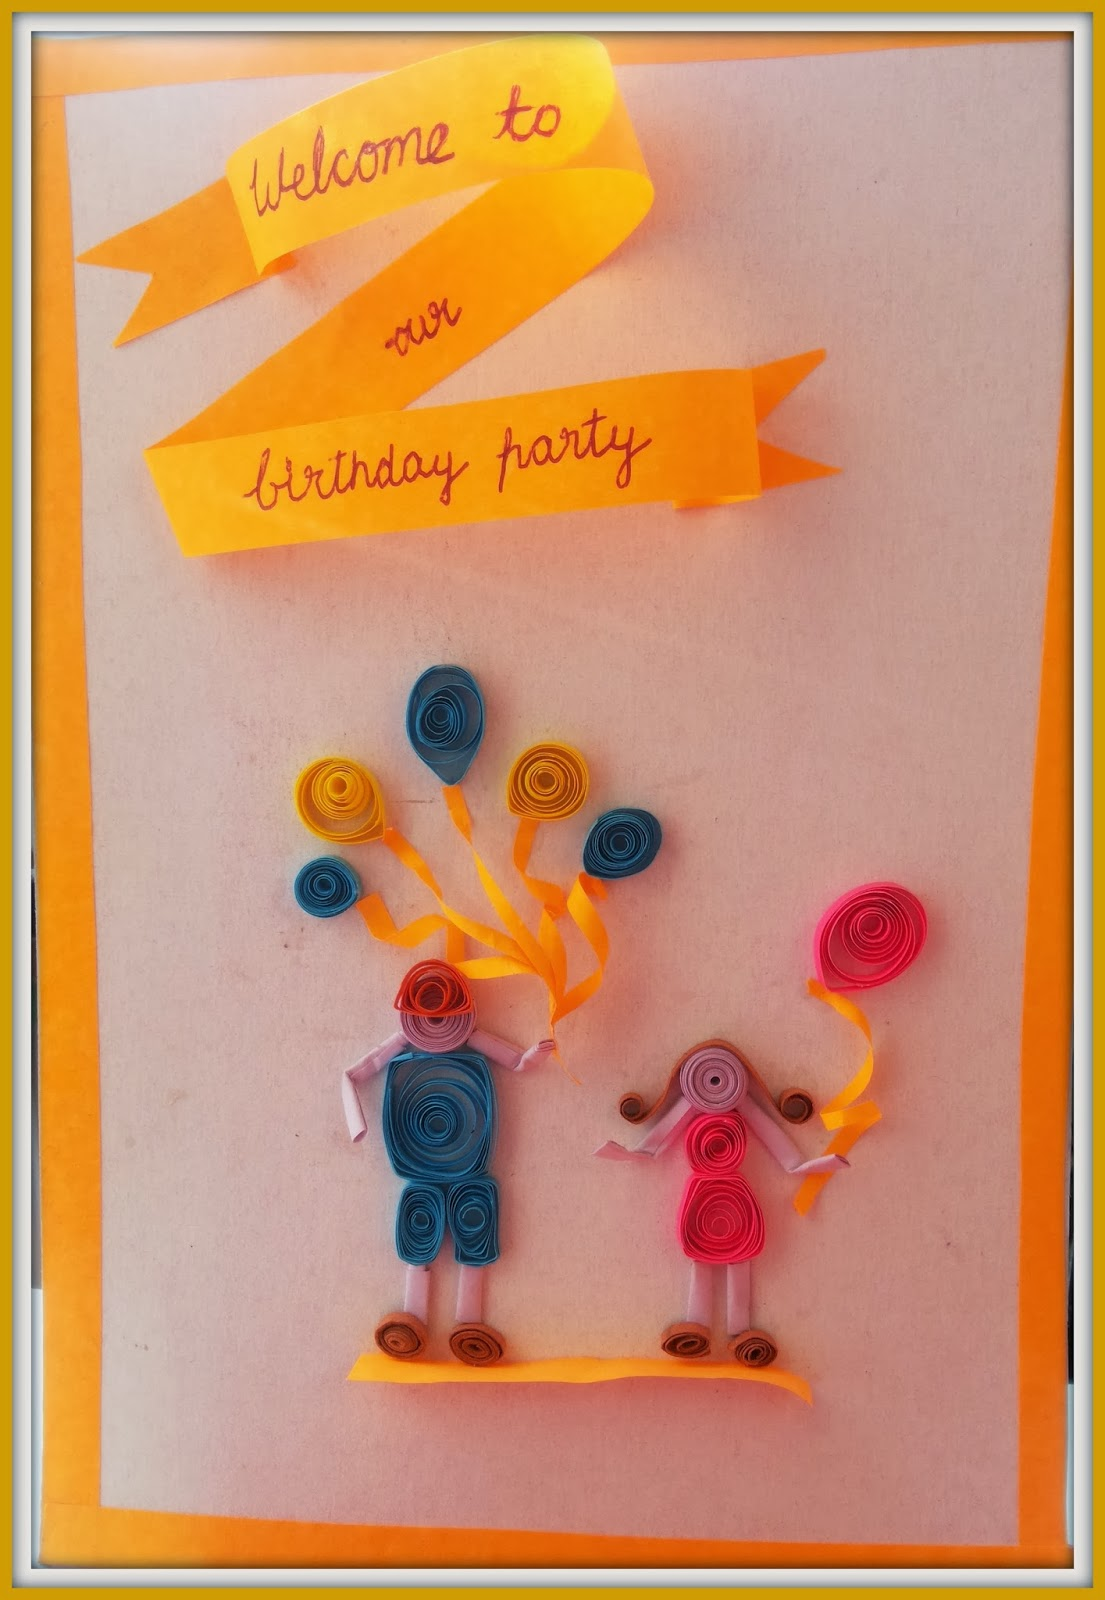 My quilling zone paper quilled birthday invite on behalf of my lil my sisters son5 and daughter1 are celebrating their bday and now that im quilling these days thought of doing a bday invite it isy holding stopboris